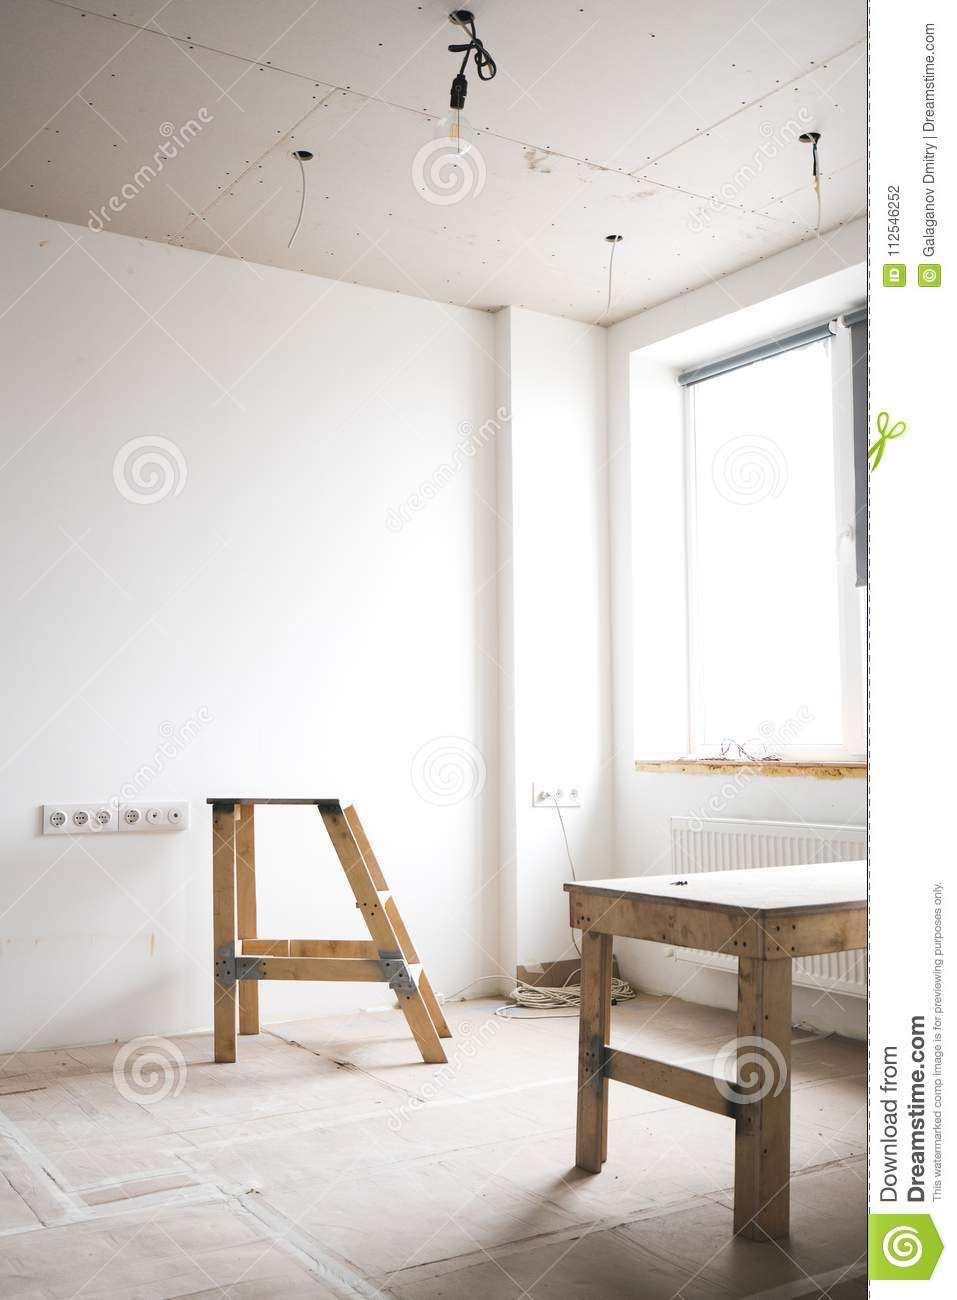 Repair In The Apartment Two Wooden Ladders A White Interior Wiring Behind Plaster Walls Bright Room With Fresh Plastered And Working Electricity House